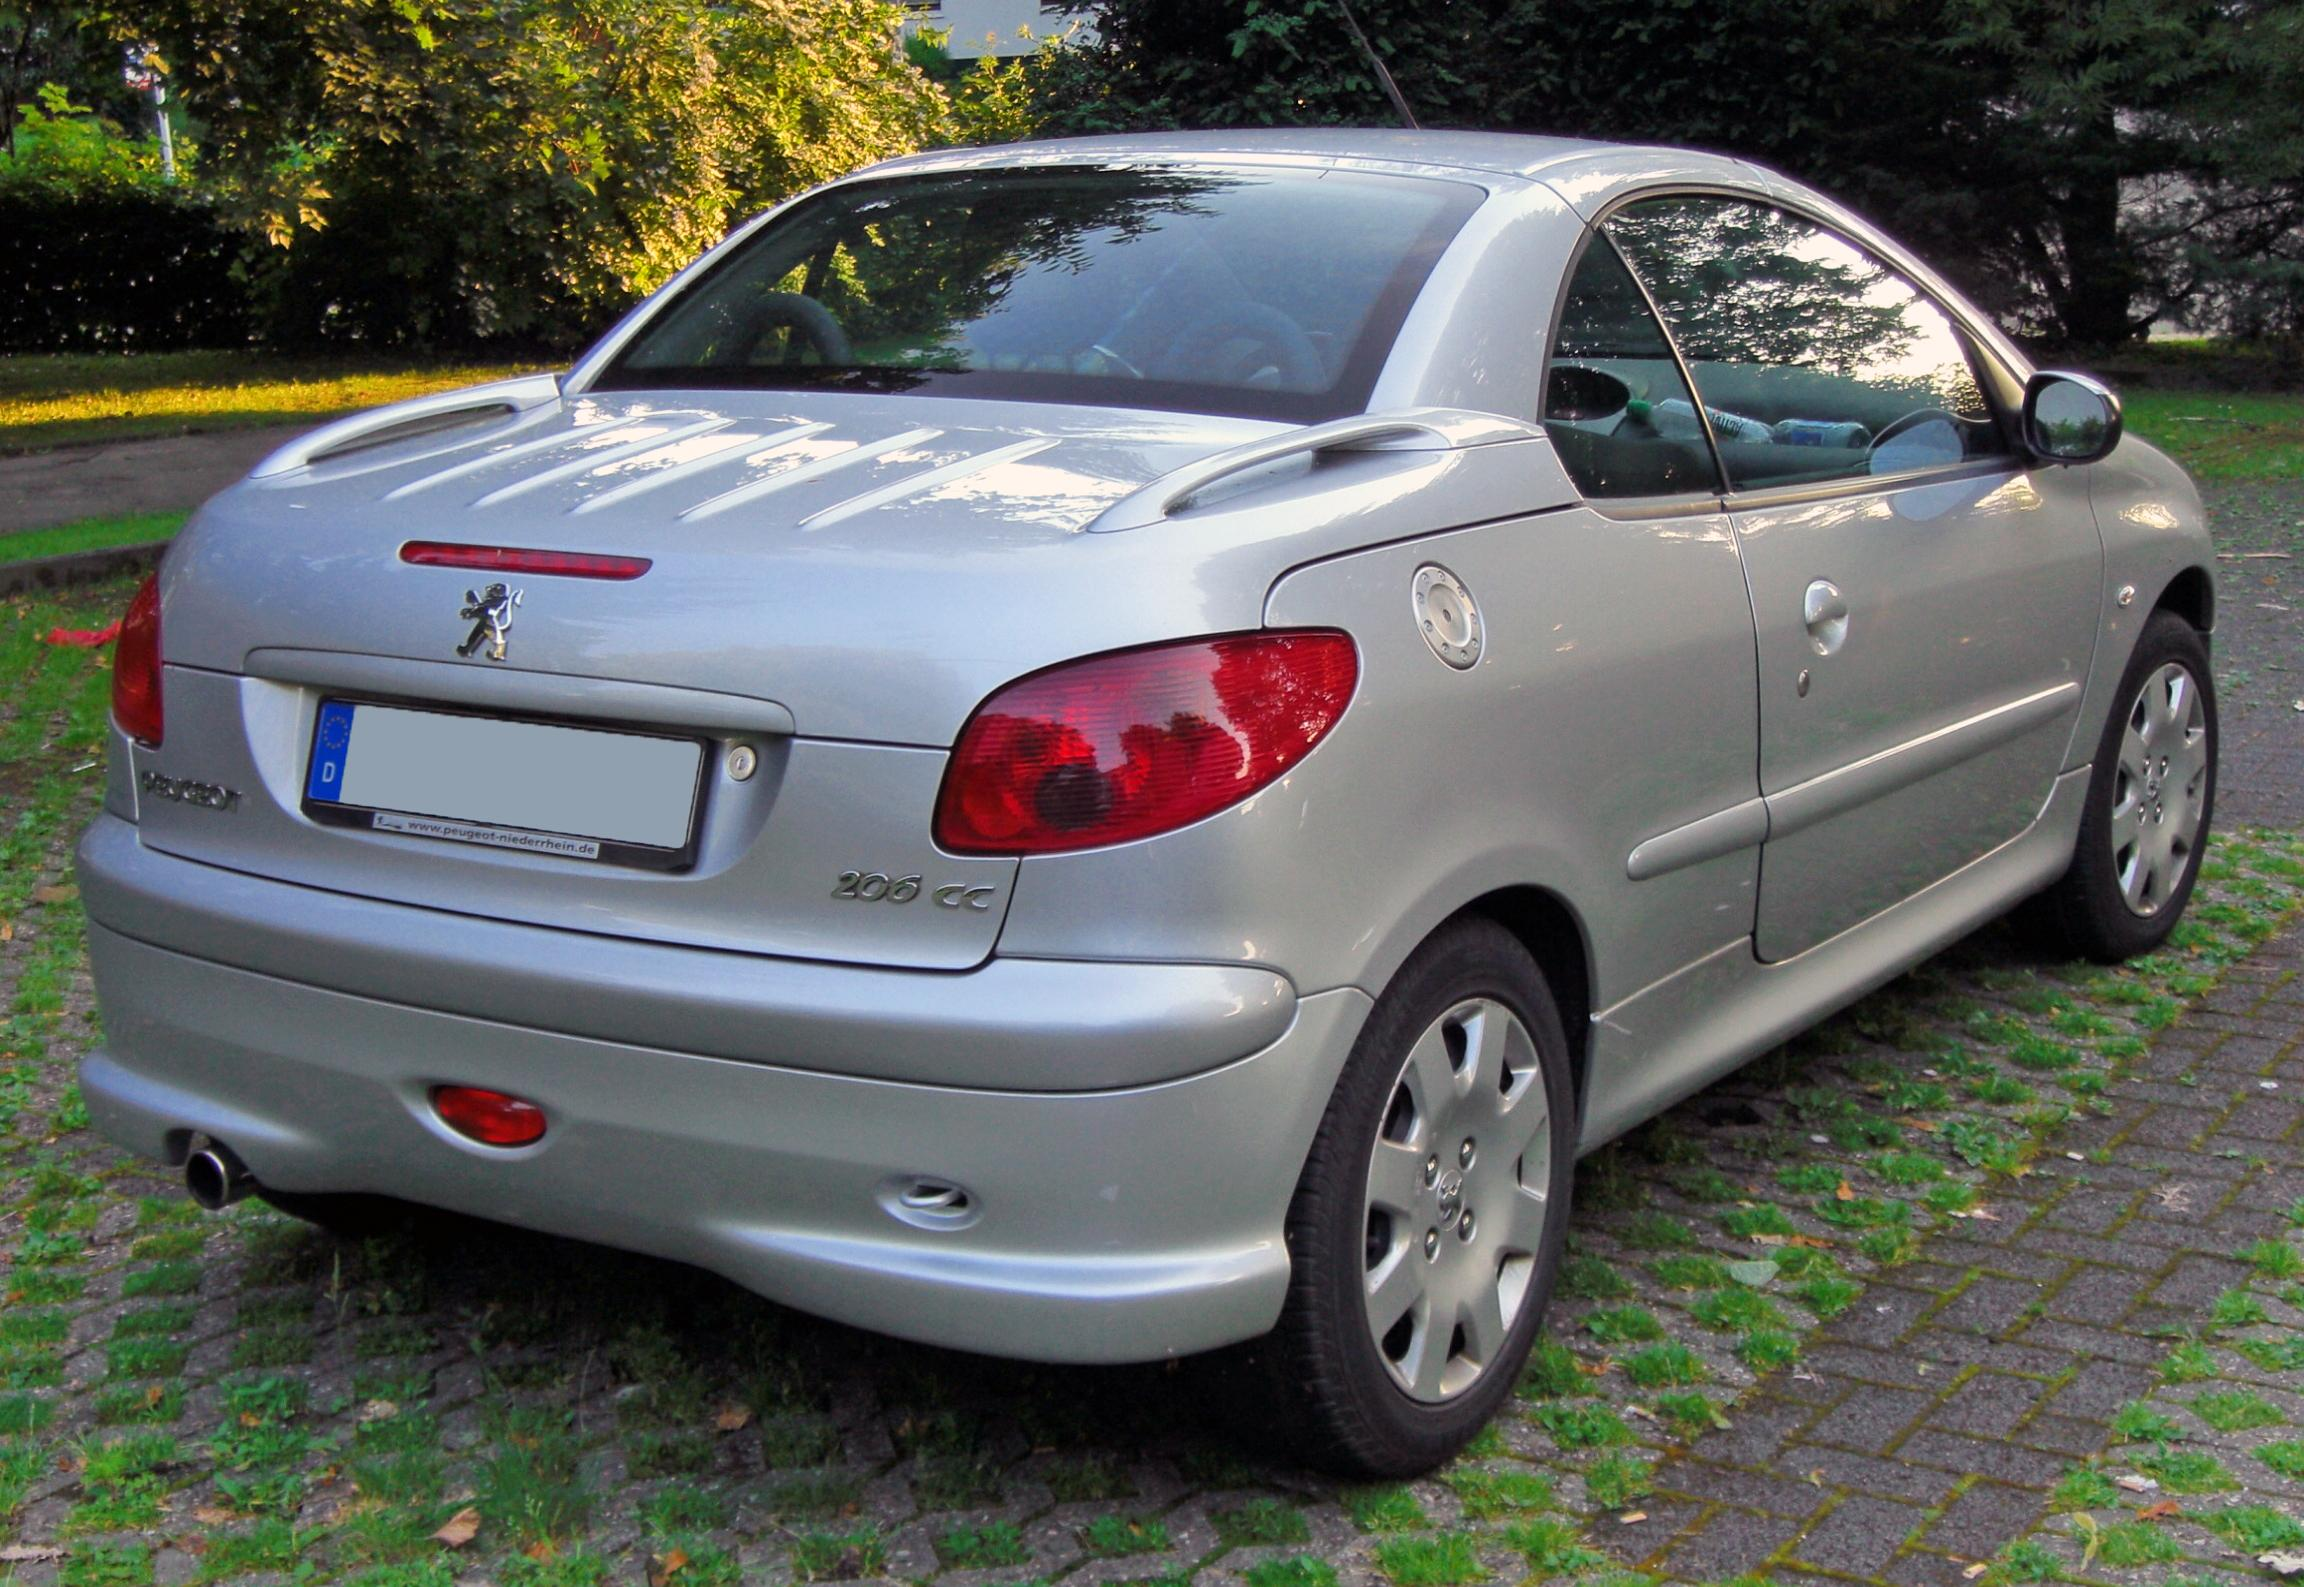 file peugeot 206 cc 20090612 rear jpg wikipedia. Black Bedroom Furniture Sets. Home Design Ideas